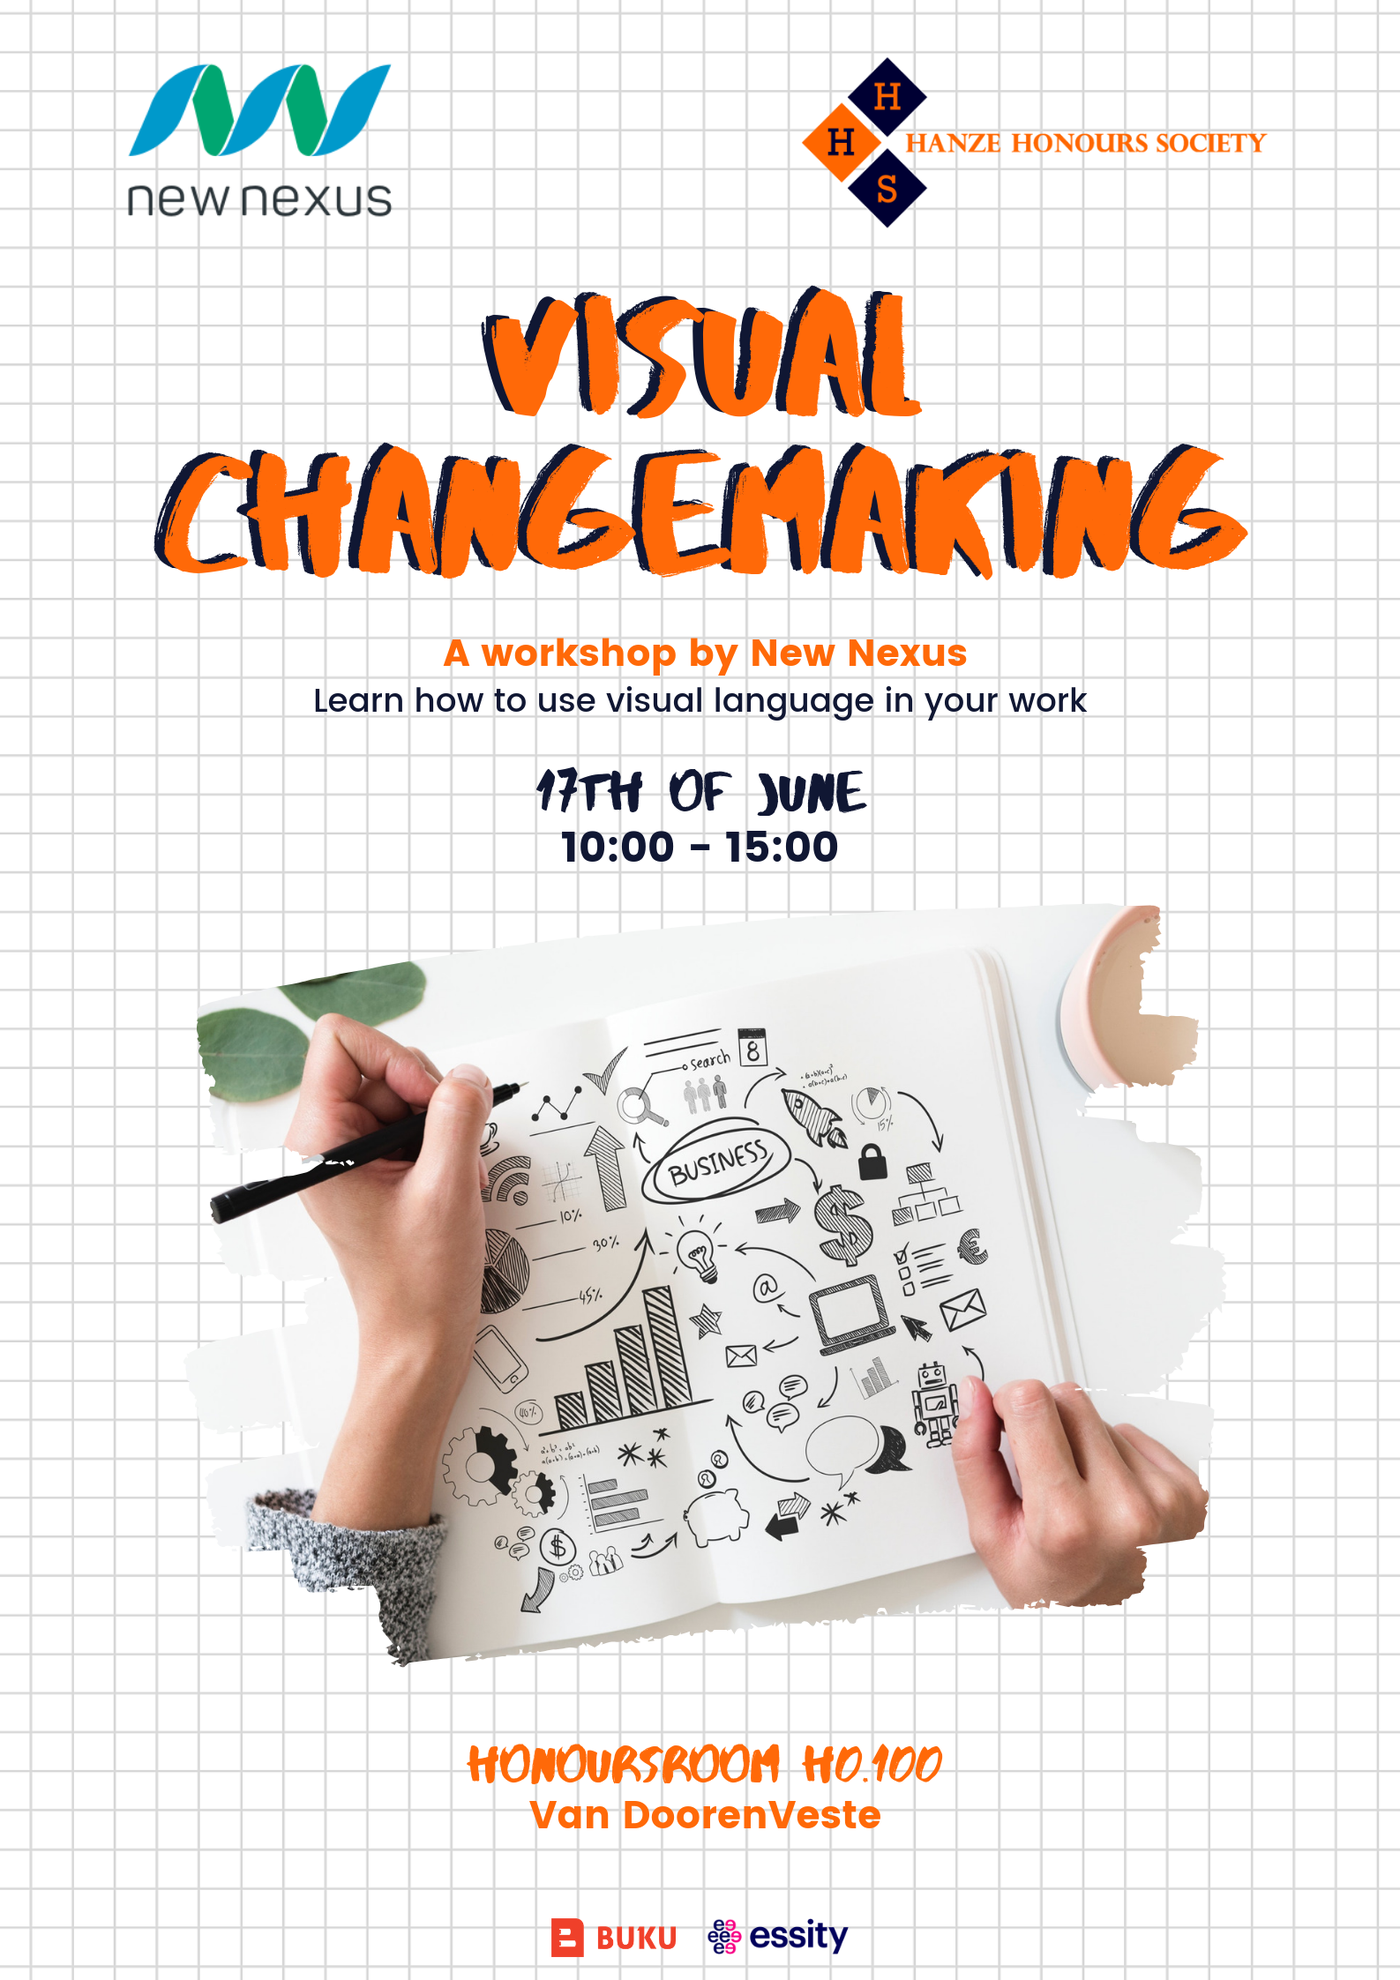 Workshop: Virtual Changemaking